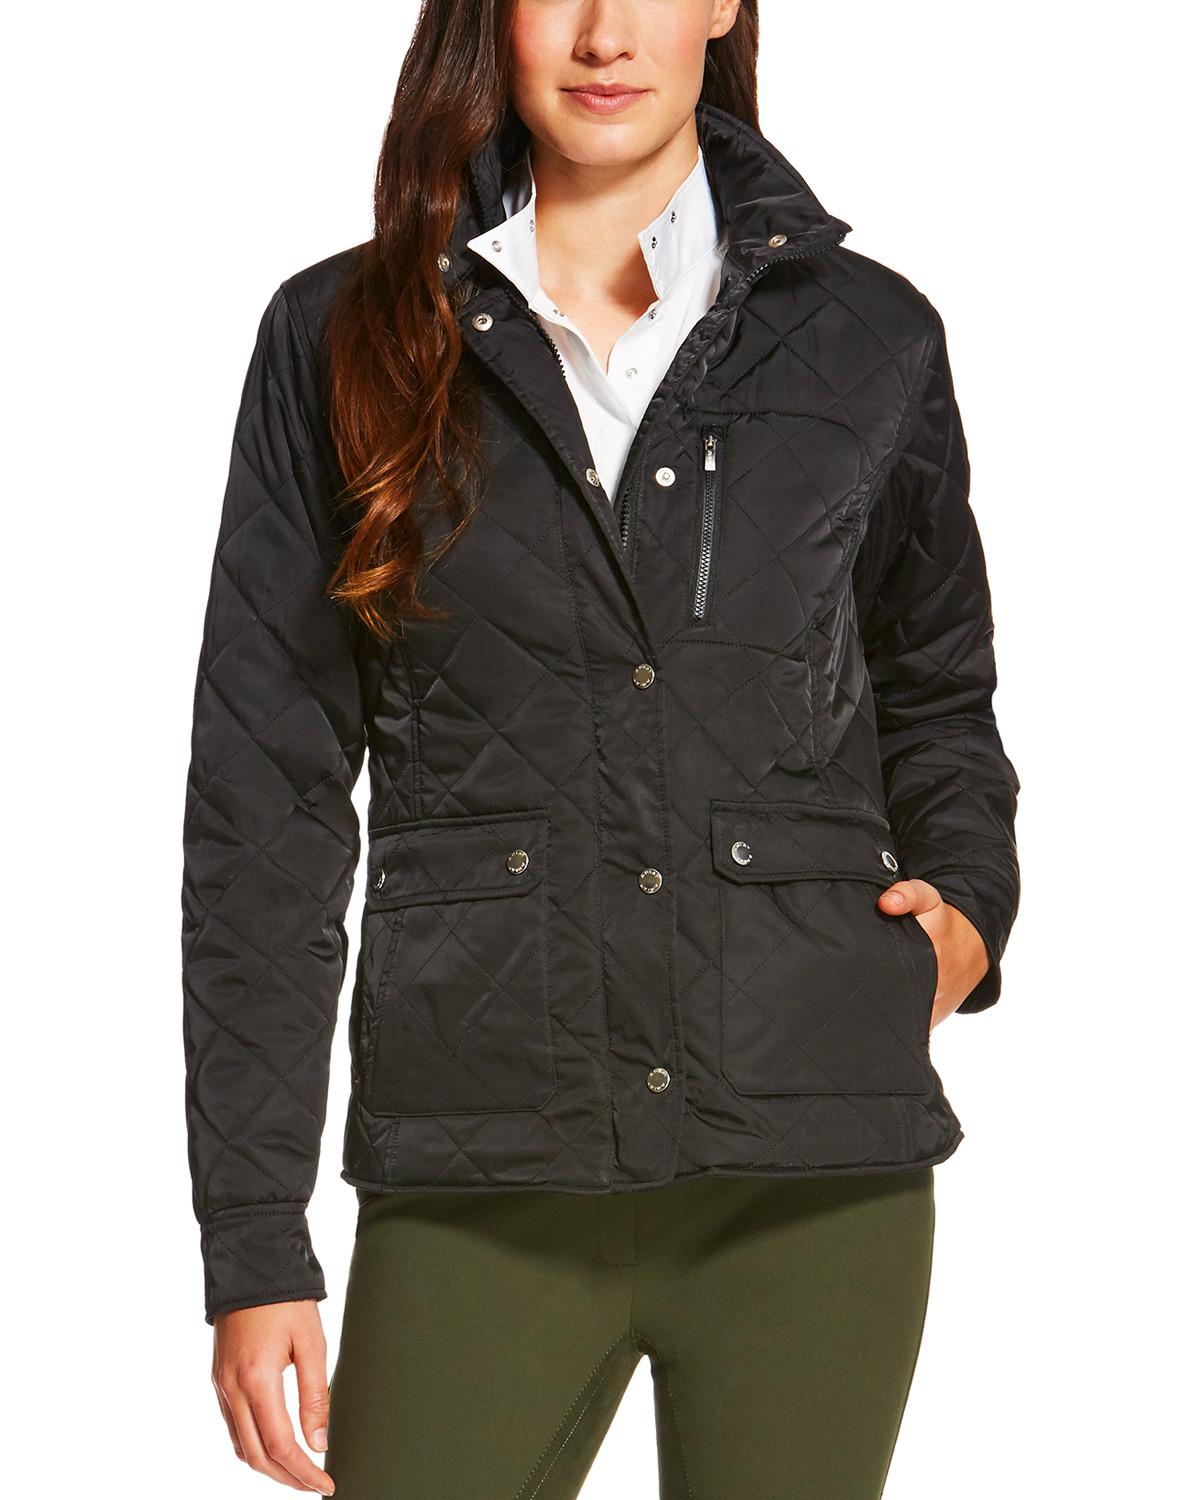 quilted barn jacket on zoom nautica today diamond sale womens s women plus size barns